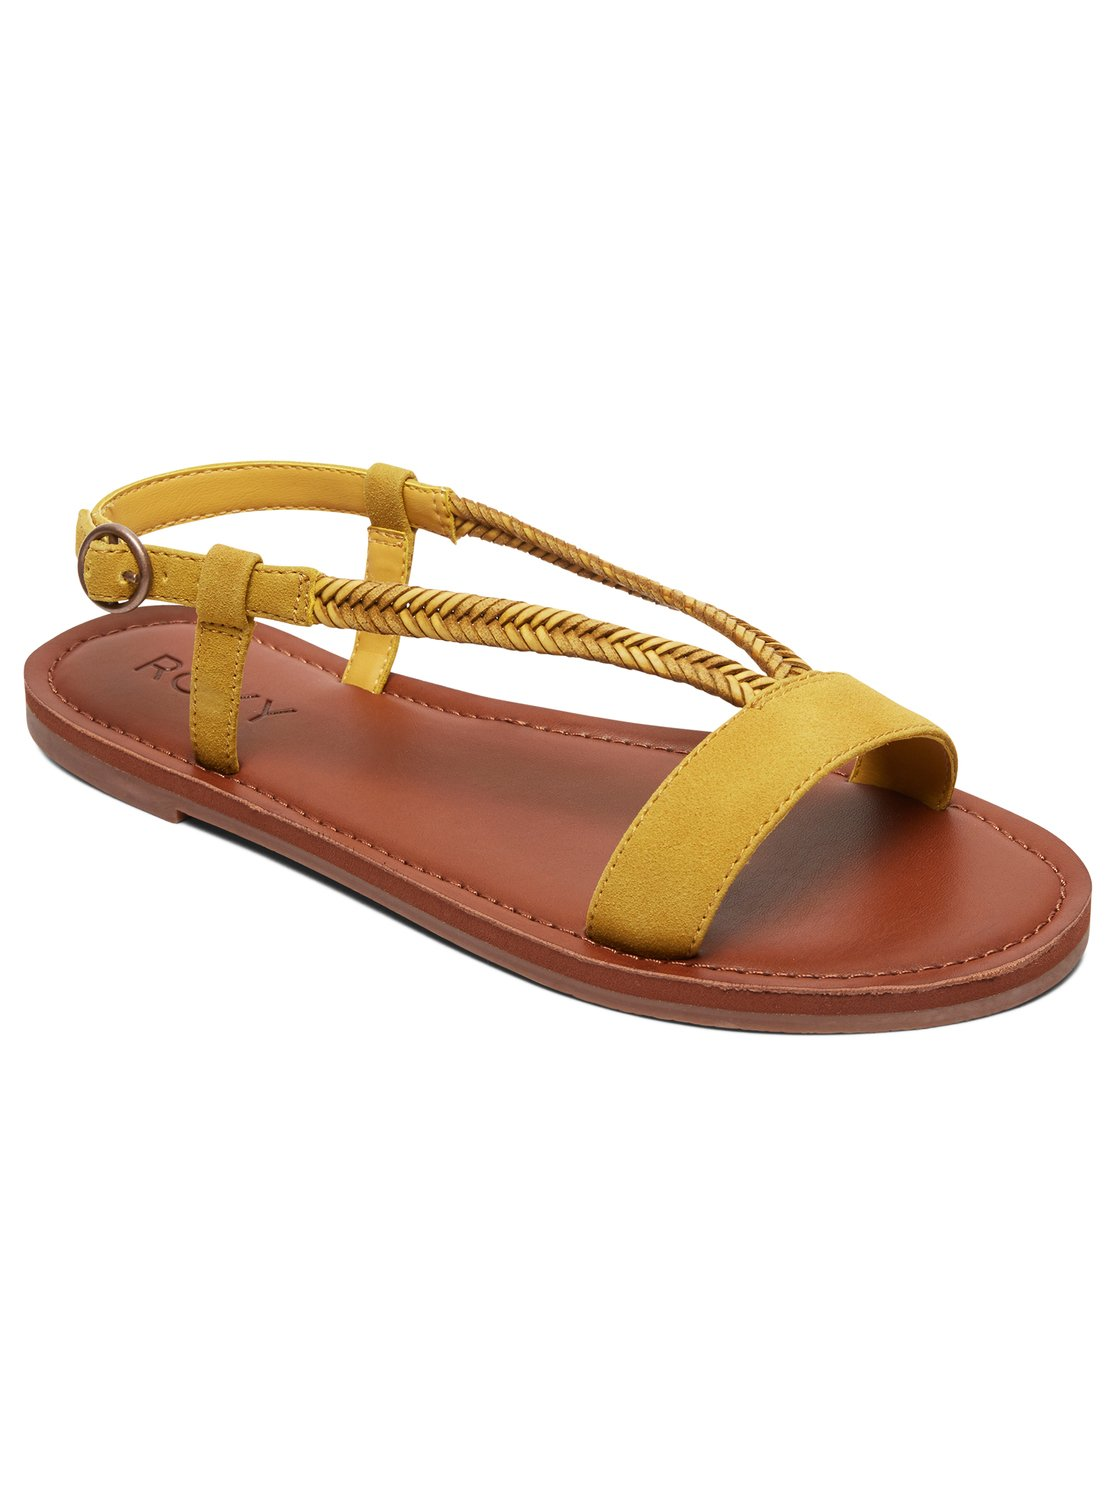 07cb3b0d9 0 Kitty Braided Faux-Suede Sandals Yellow ARJL100765 Roxy